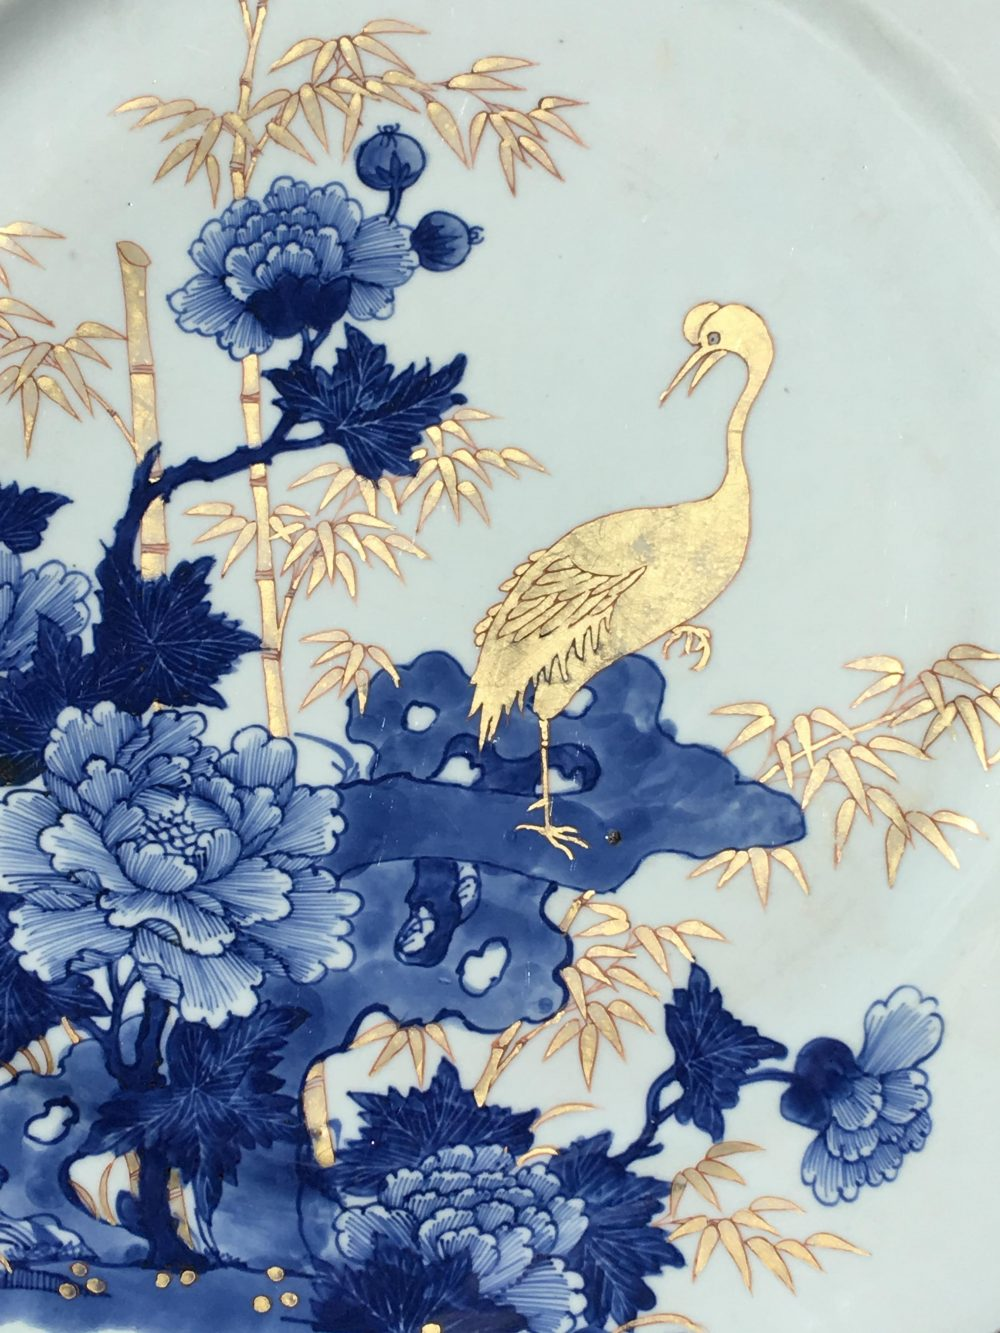 Porcelain Qianlong (1735-1795), China